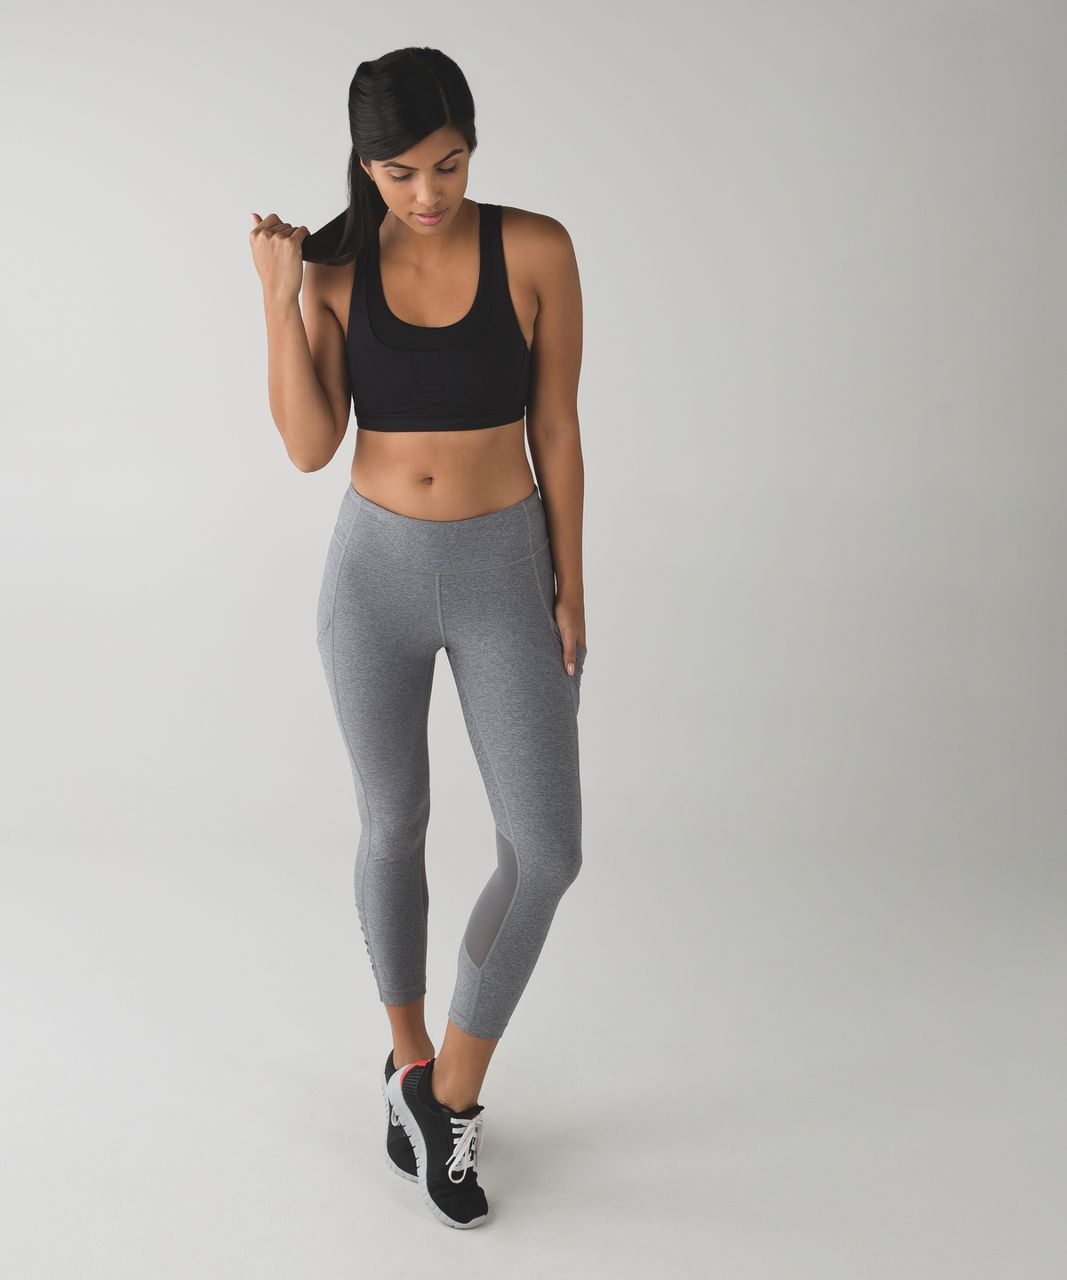 Lululemon Run:  Stuff Your Bra II - Black